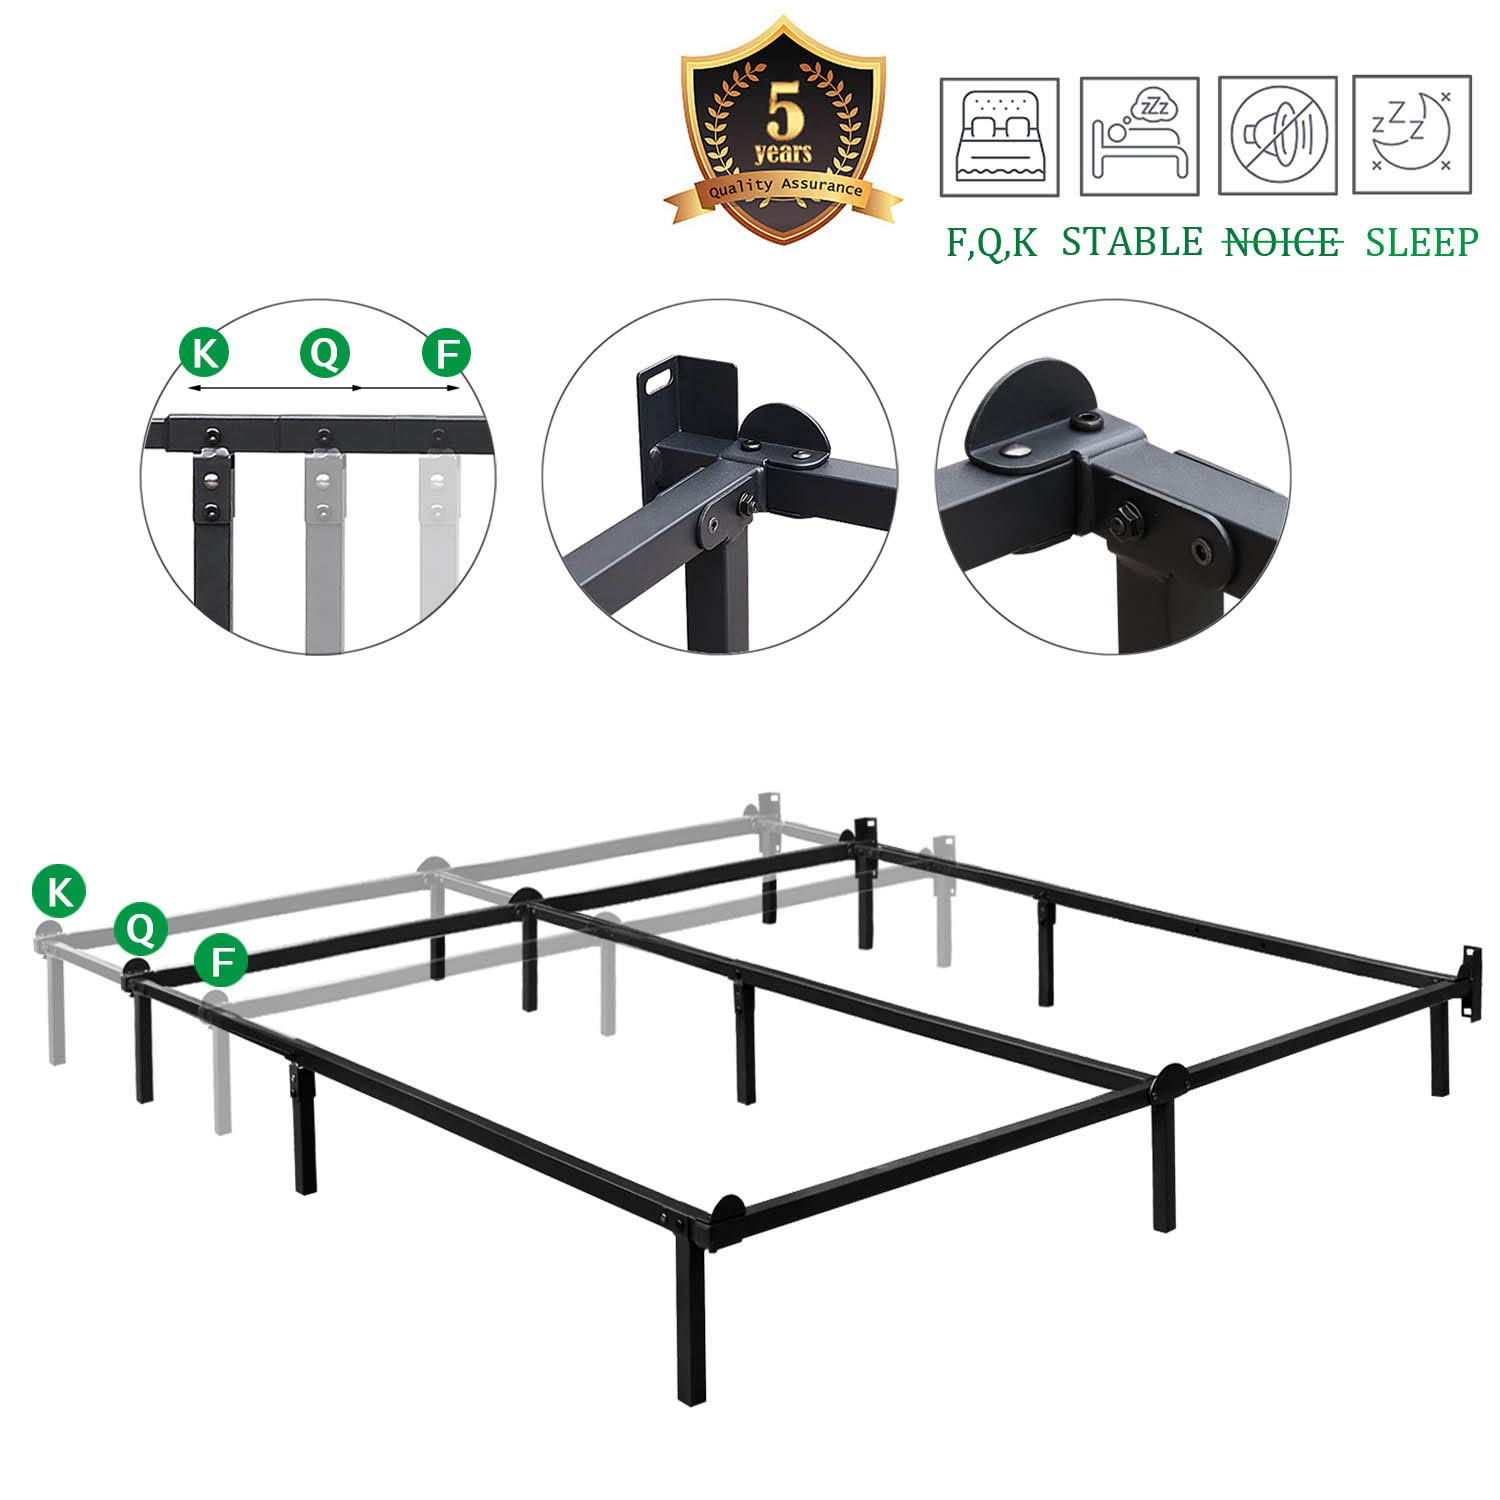 HAAGEEP Queen Size Bed Frame for Box Spring and Mattress Set Adjustable Full Beds King Frames Metal Bedframe Support by HAAGEEP